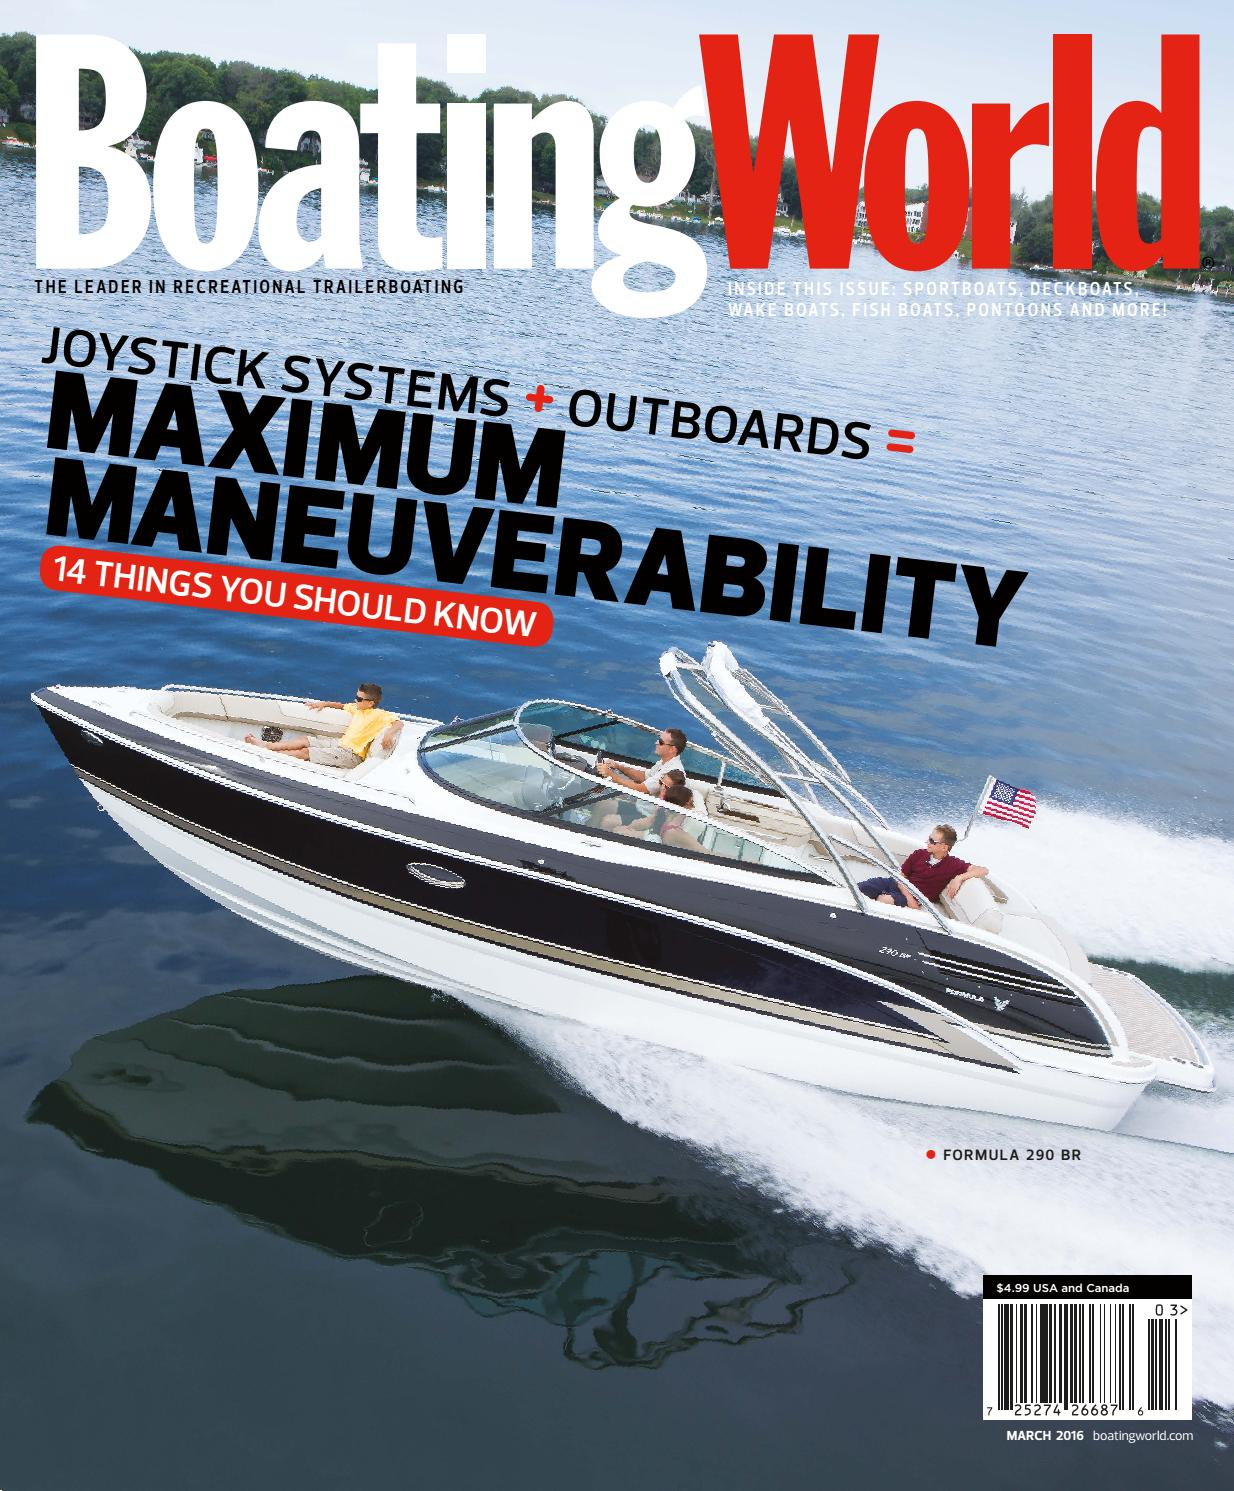 page_1 march 2016 boating world magazine by duncan mcintosh company issuu  at pacquiaovsvargaslive.co